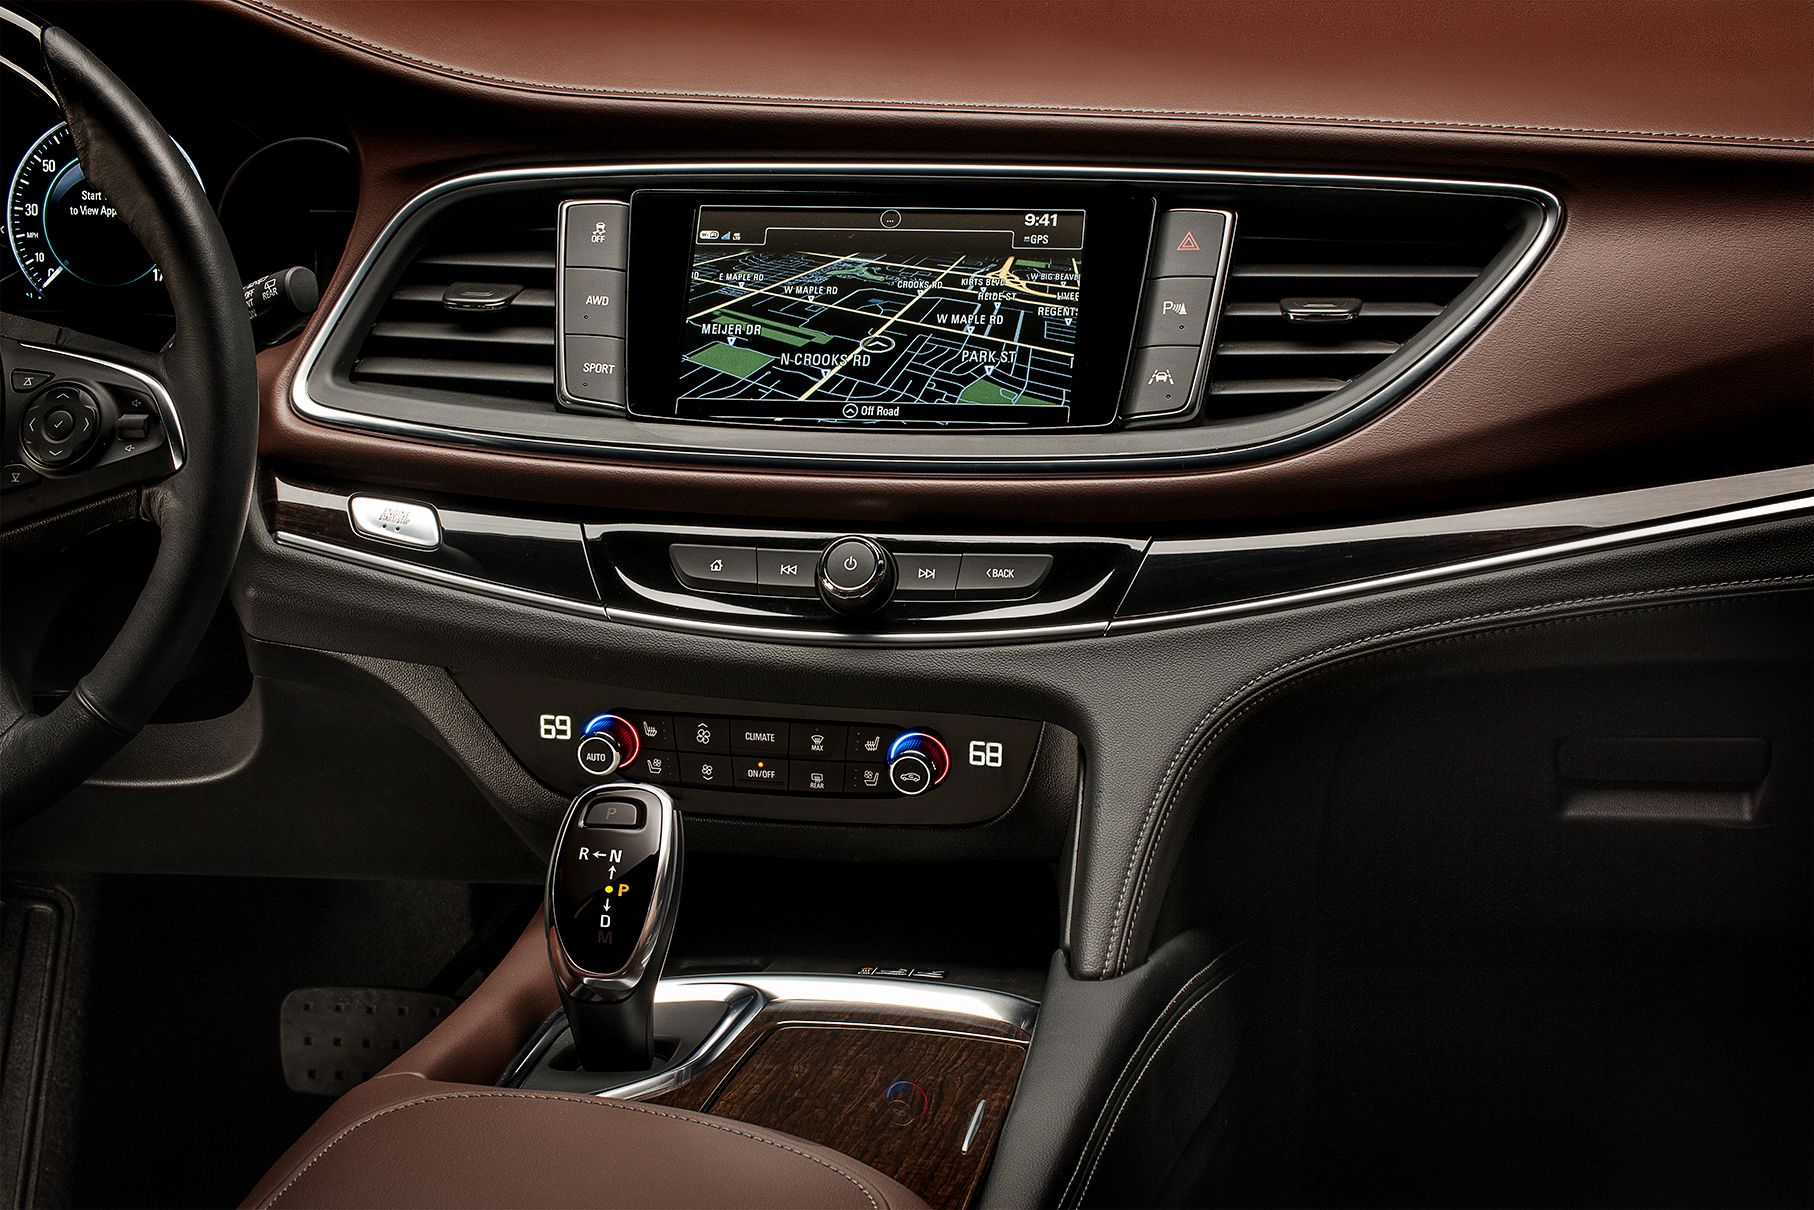 2018 buick enclave avenir center stack featuring touch screen